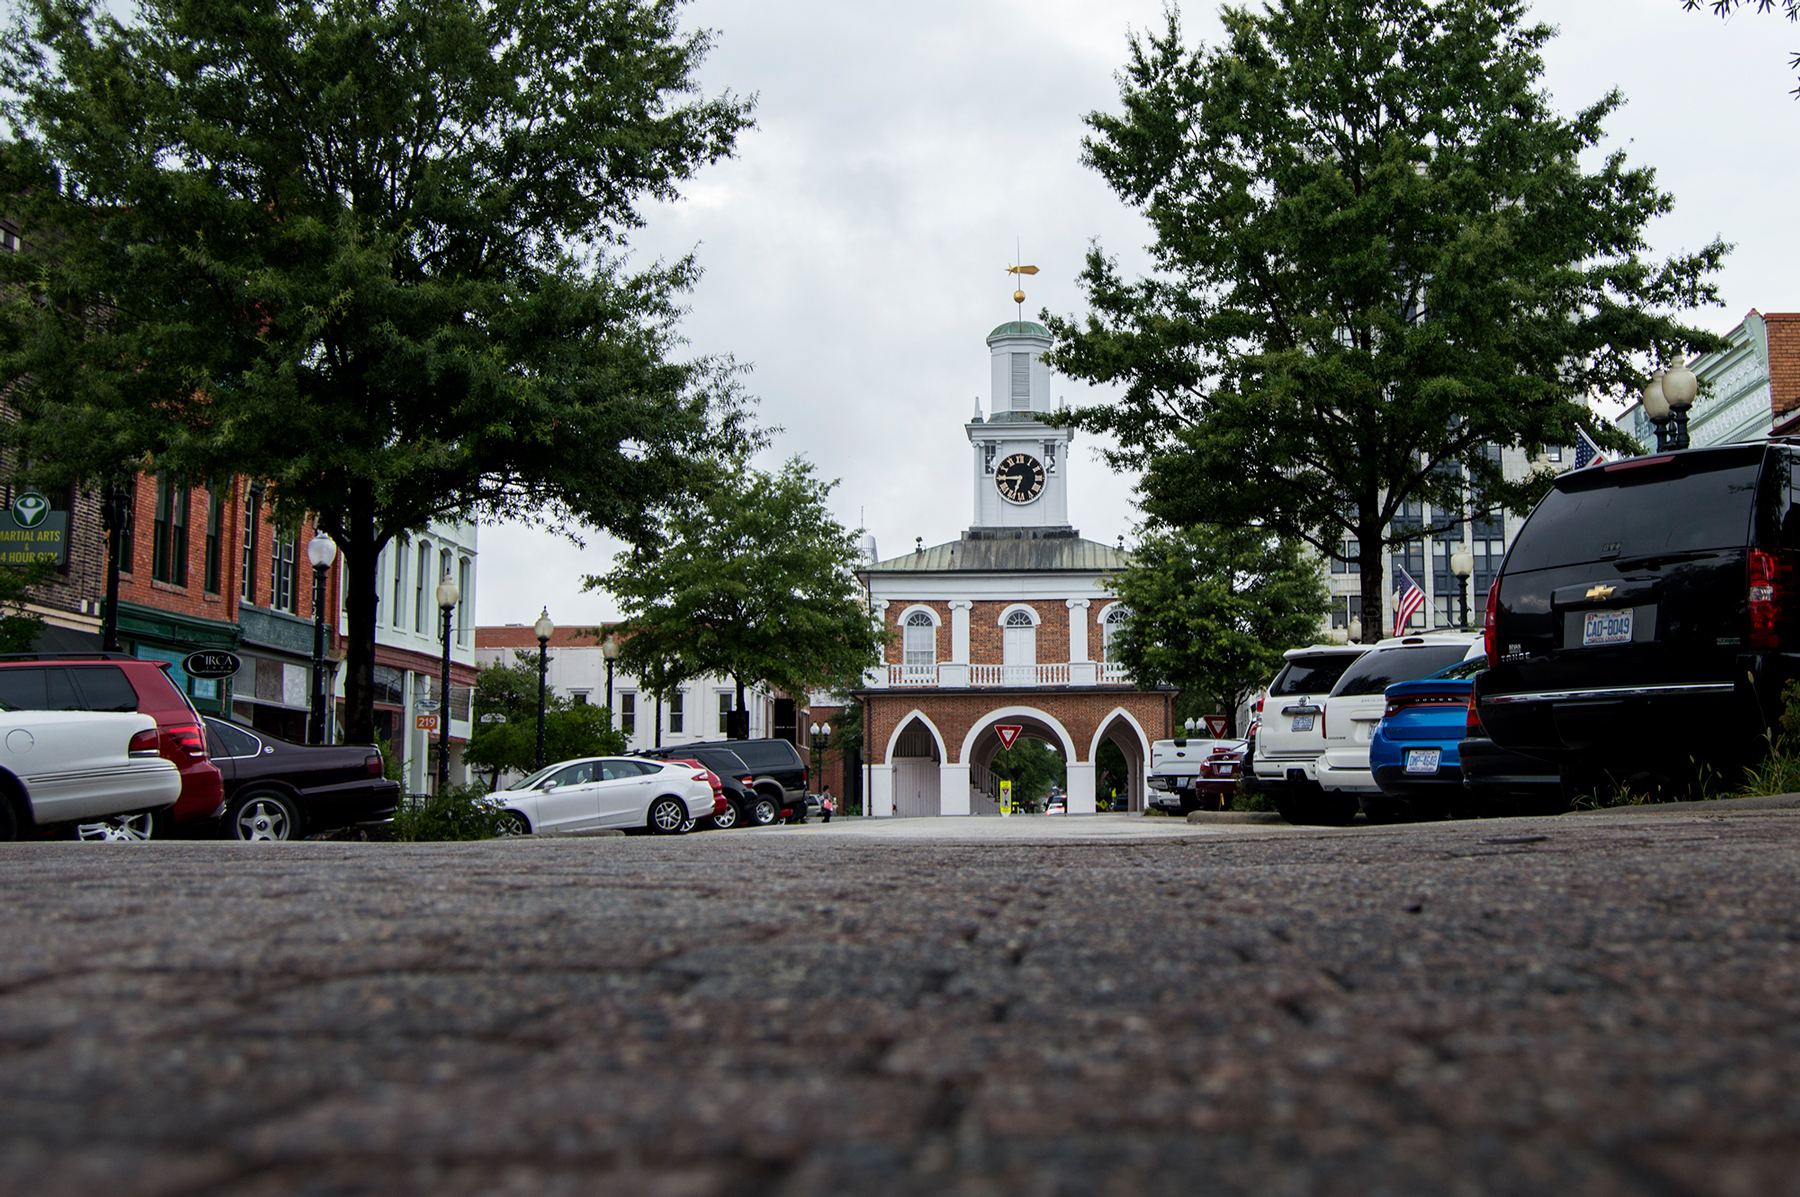 The Market House in Fayetteville, North Carolina, was named a national historic landmark in 1973. It was built in 1832. (Michael Olinger/News21)